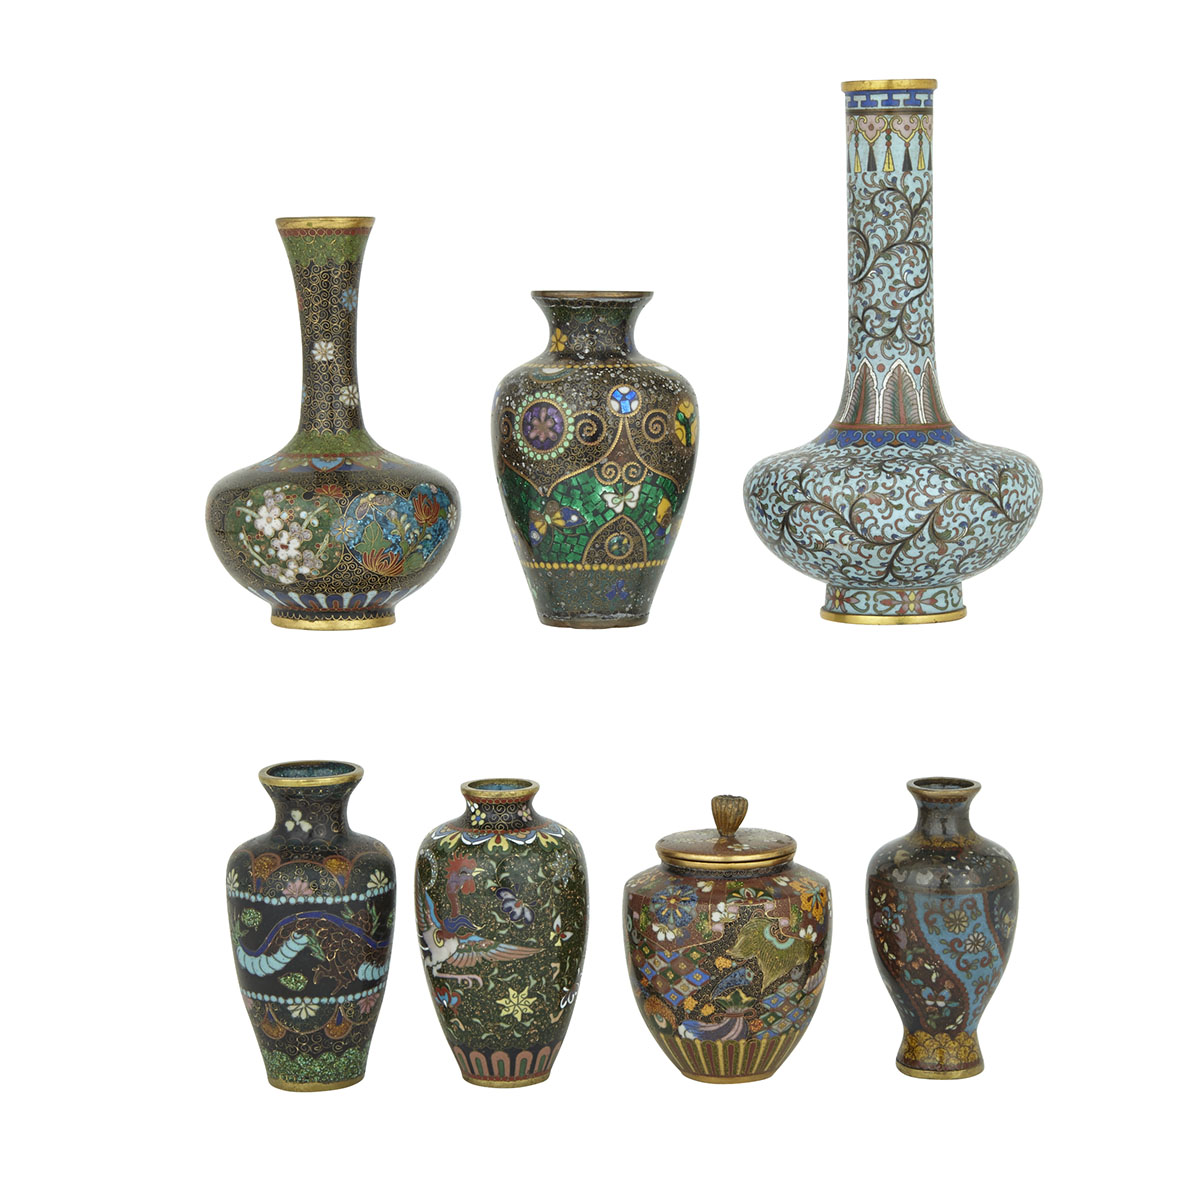 Group of Seven Japanese Cloisonné Vases, Early 20th Century